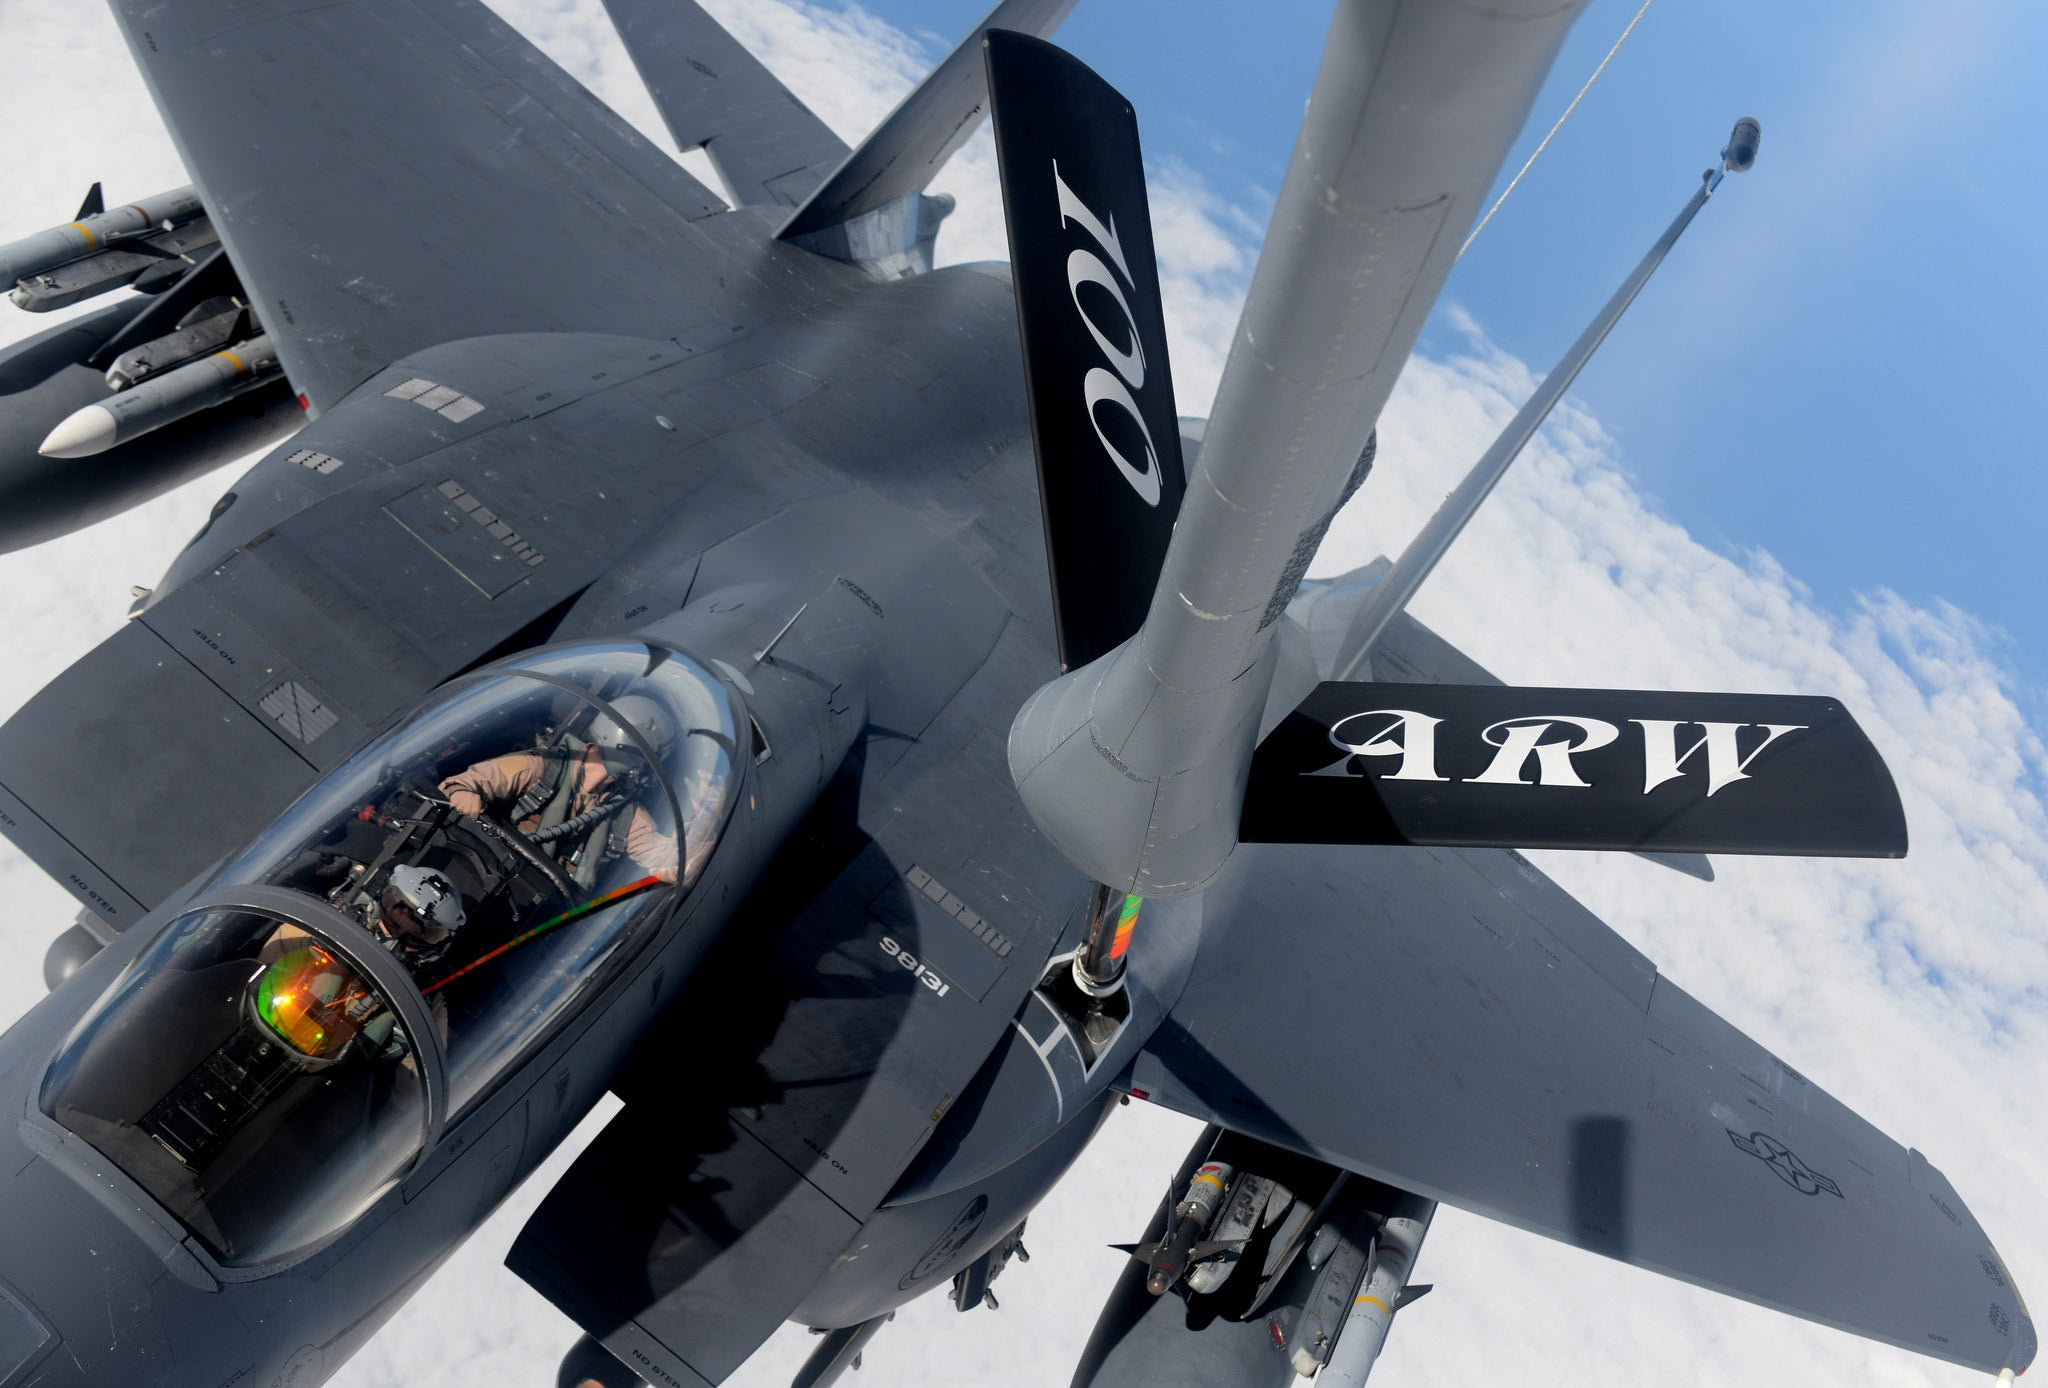 Awesome Photo Of A F-15 Being Refueled From The Air Fuel Tankers Perspective